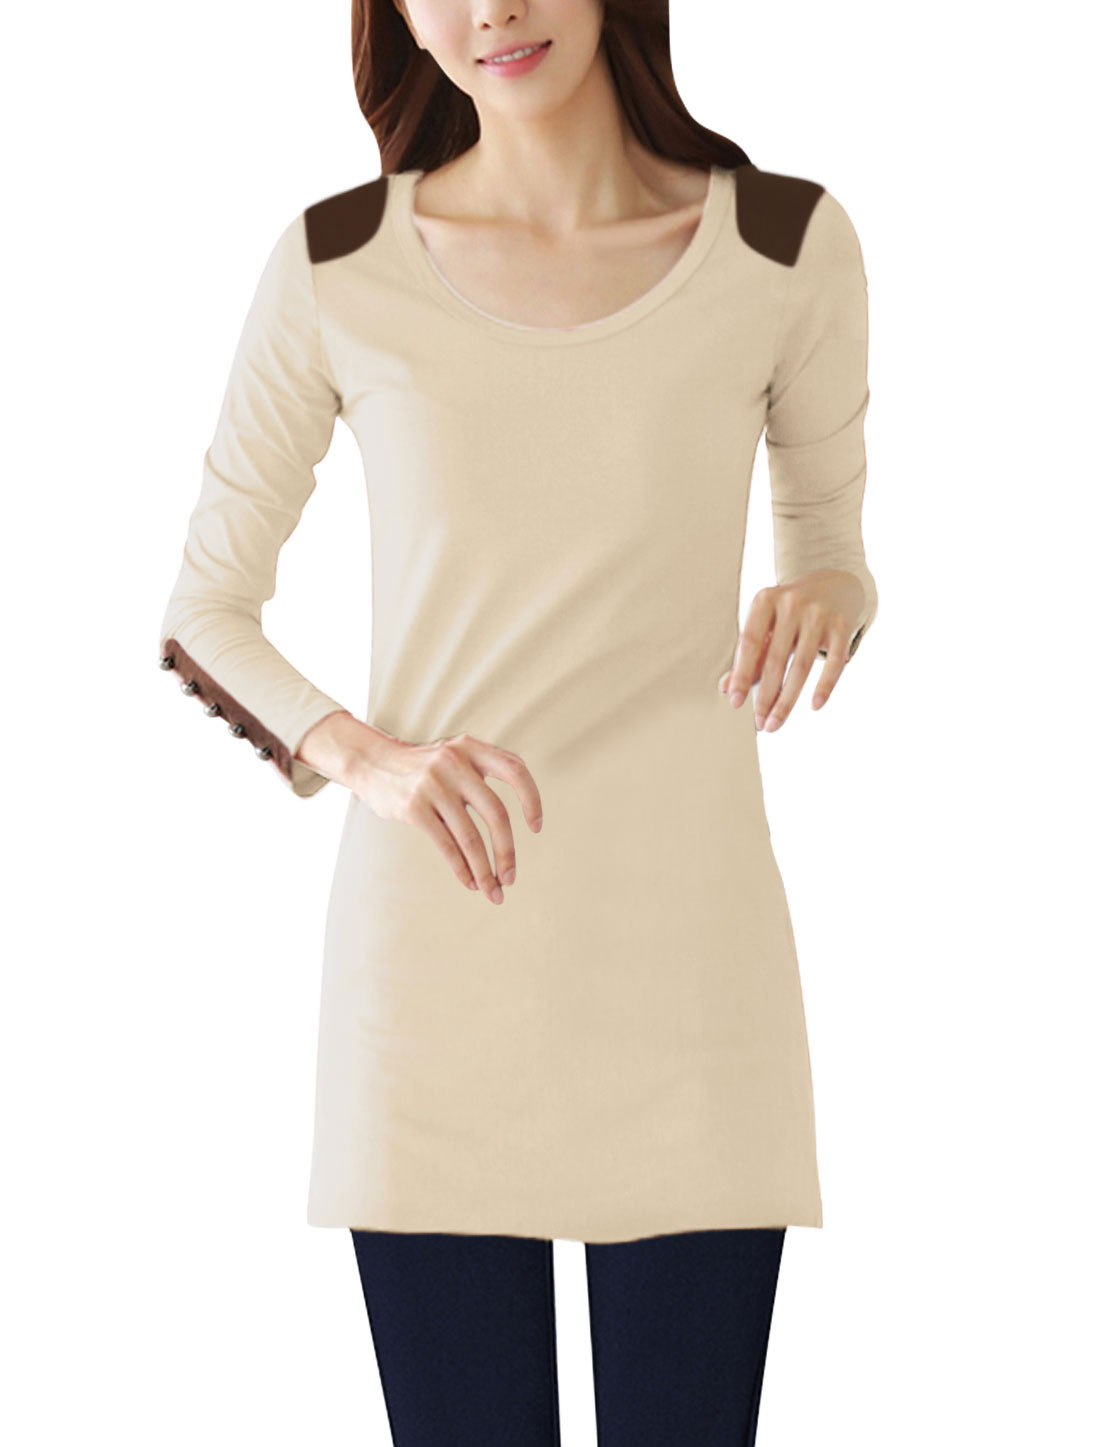 Panel Shoulder Round Neck Slim Fit Beige Tunic Shirt for Lady S